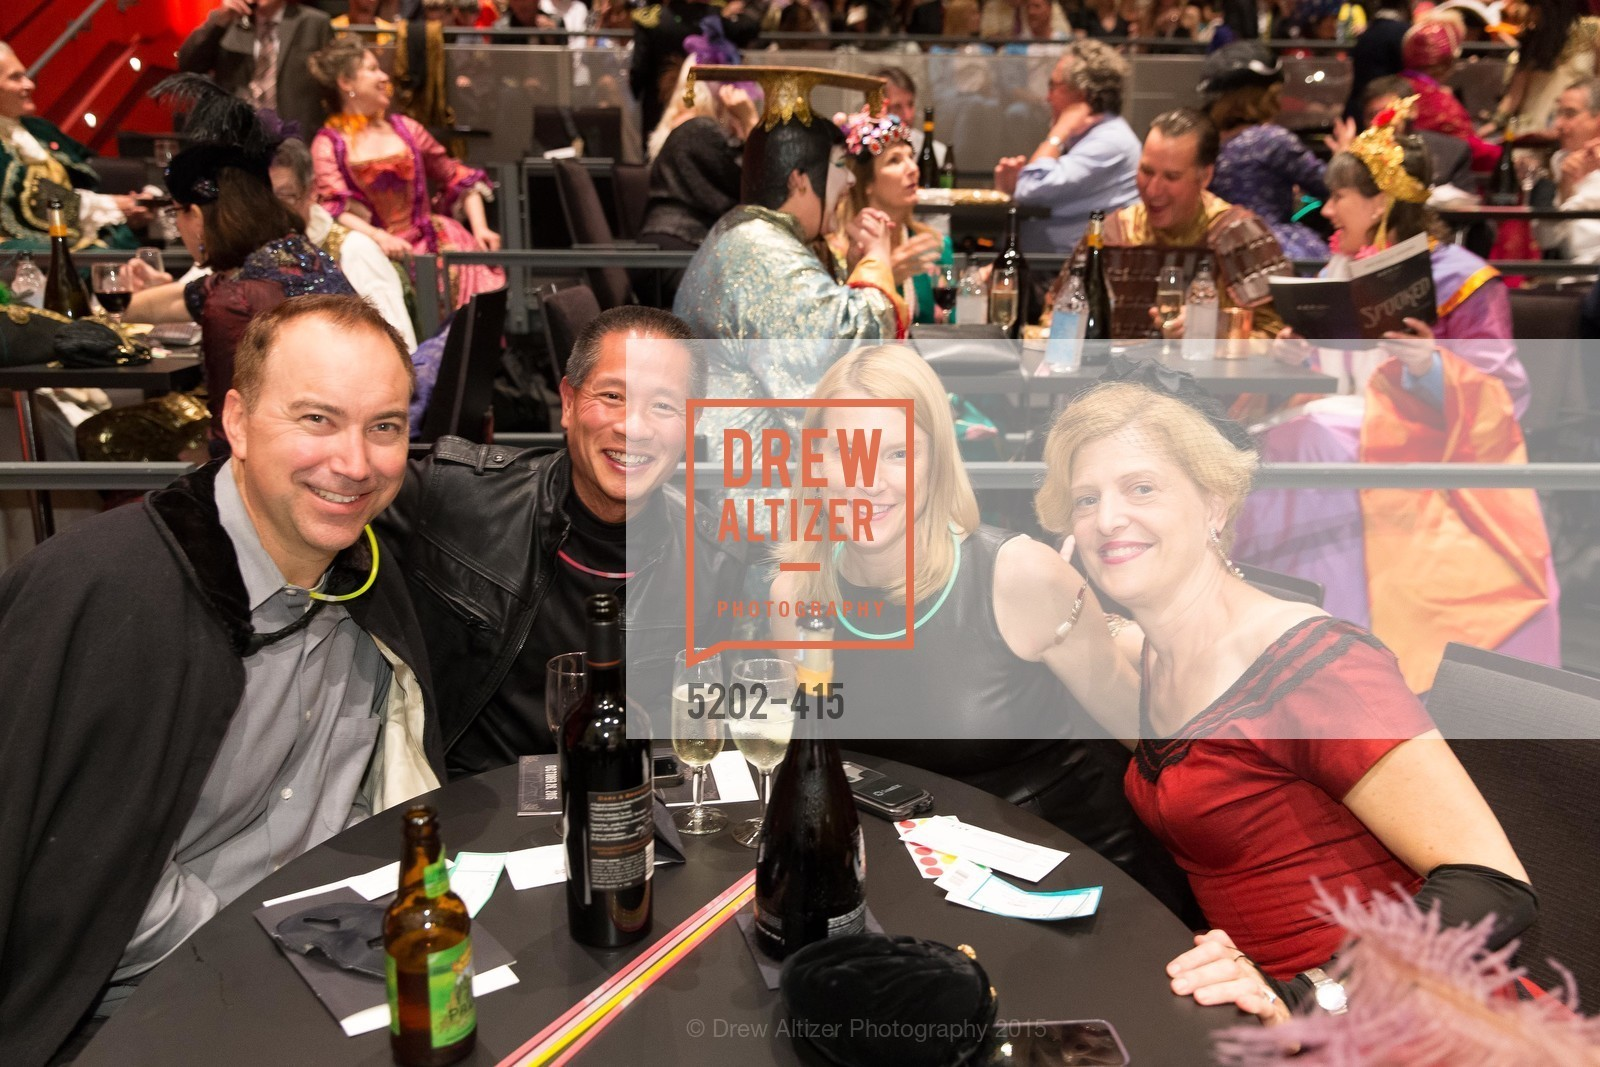 Rod Werner, Rob Theis, Lynda Moyer, Carey Perloff, SPOOKED AT THE STRAND Presented by the American Conservatory Theater, The Strand Theater. 1127 Market Street, October 26th, 2015,Drew Altizer, Drew Altizer Photography, full-service agency, private events, San Francisco photographer, photographer california